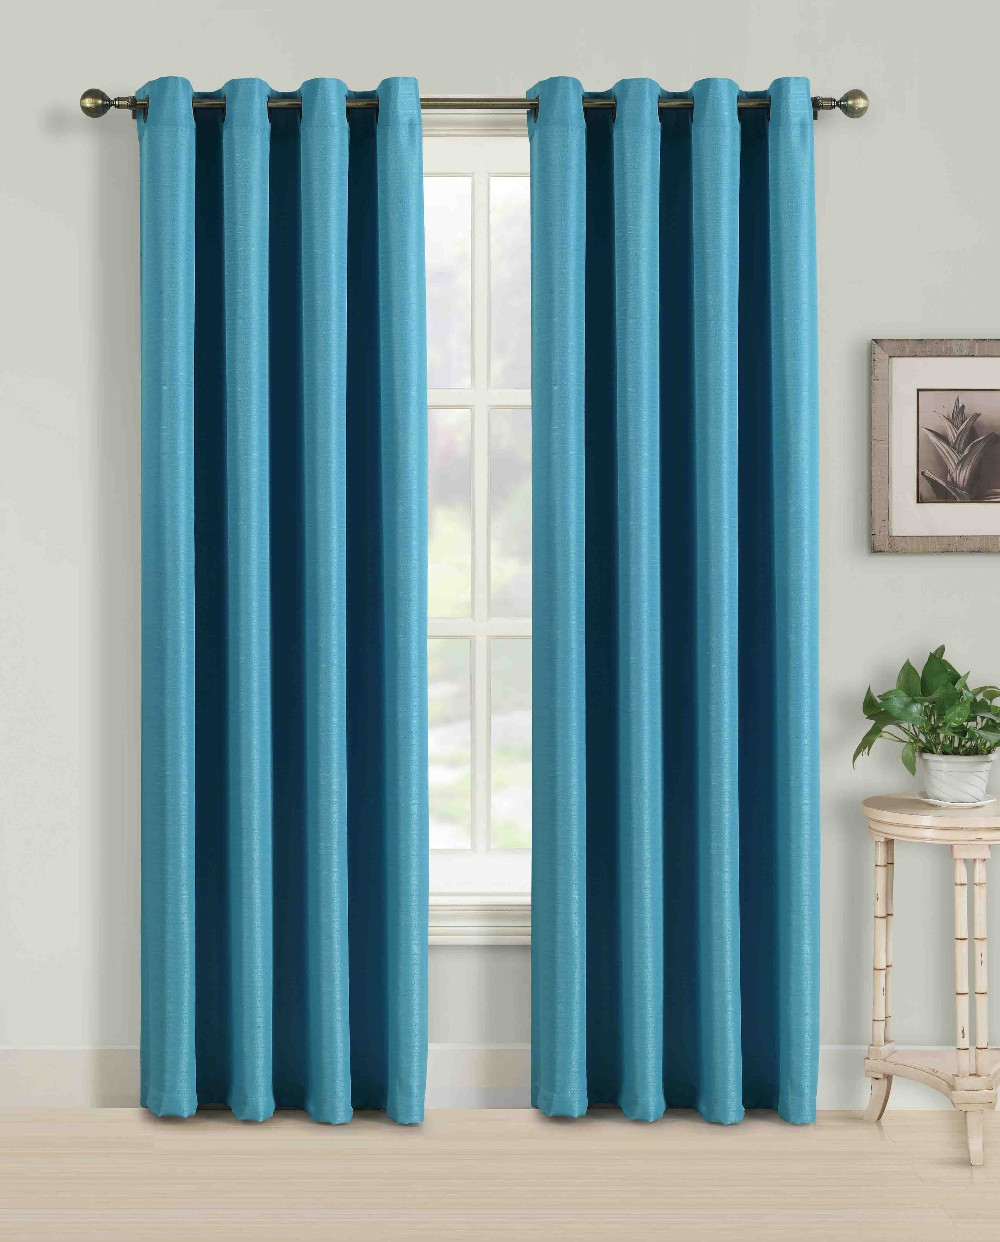 Faux Silk Curtains Solid Color Faux Silk Curtains With Matching Color Curtain Clip Buy Silk Curtains Product On Alibaba